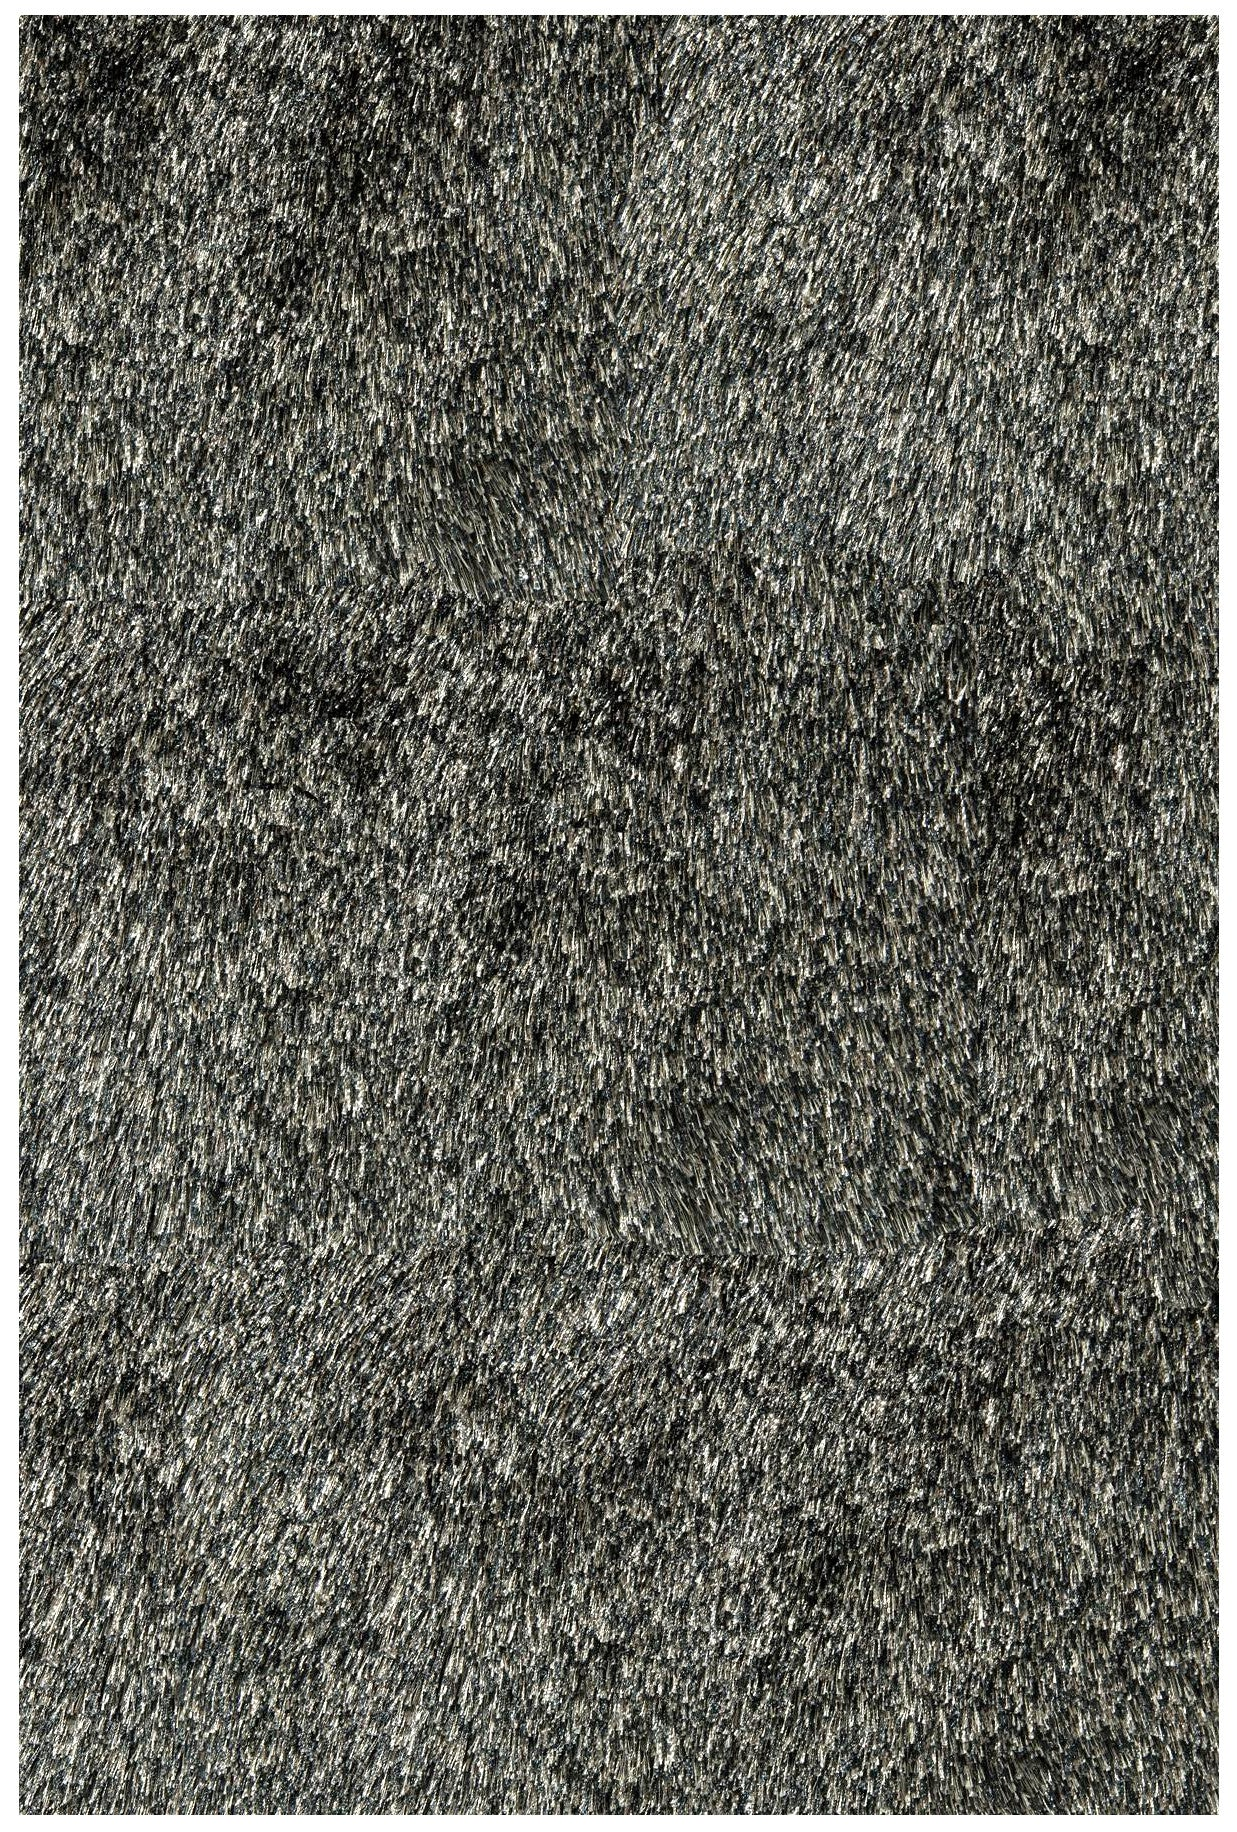 garden free the home rug nomad product curated x delmar grey trellis shag